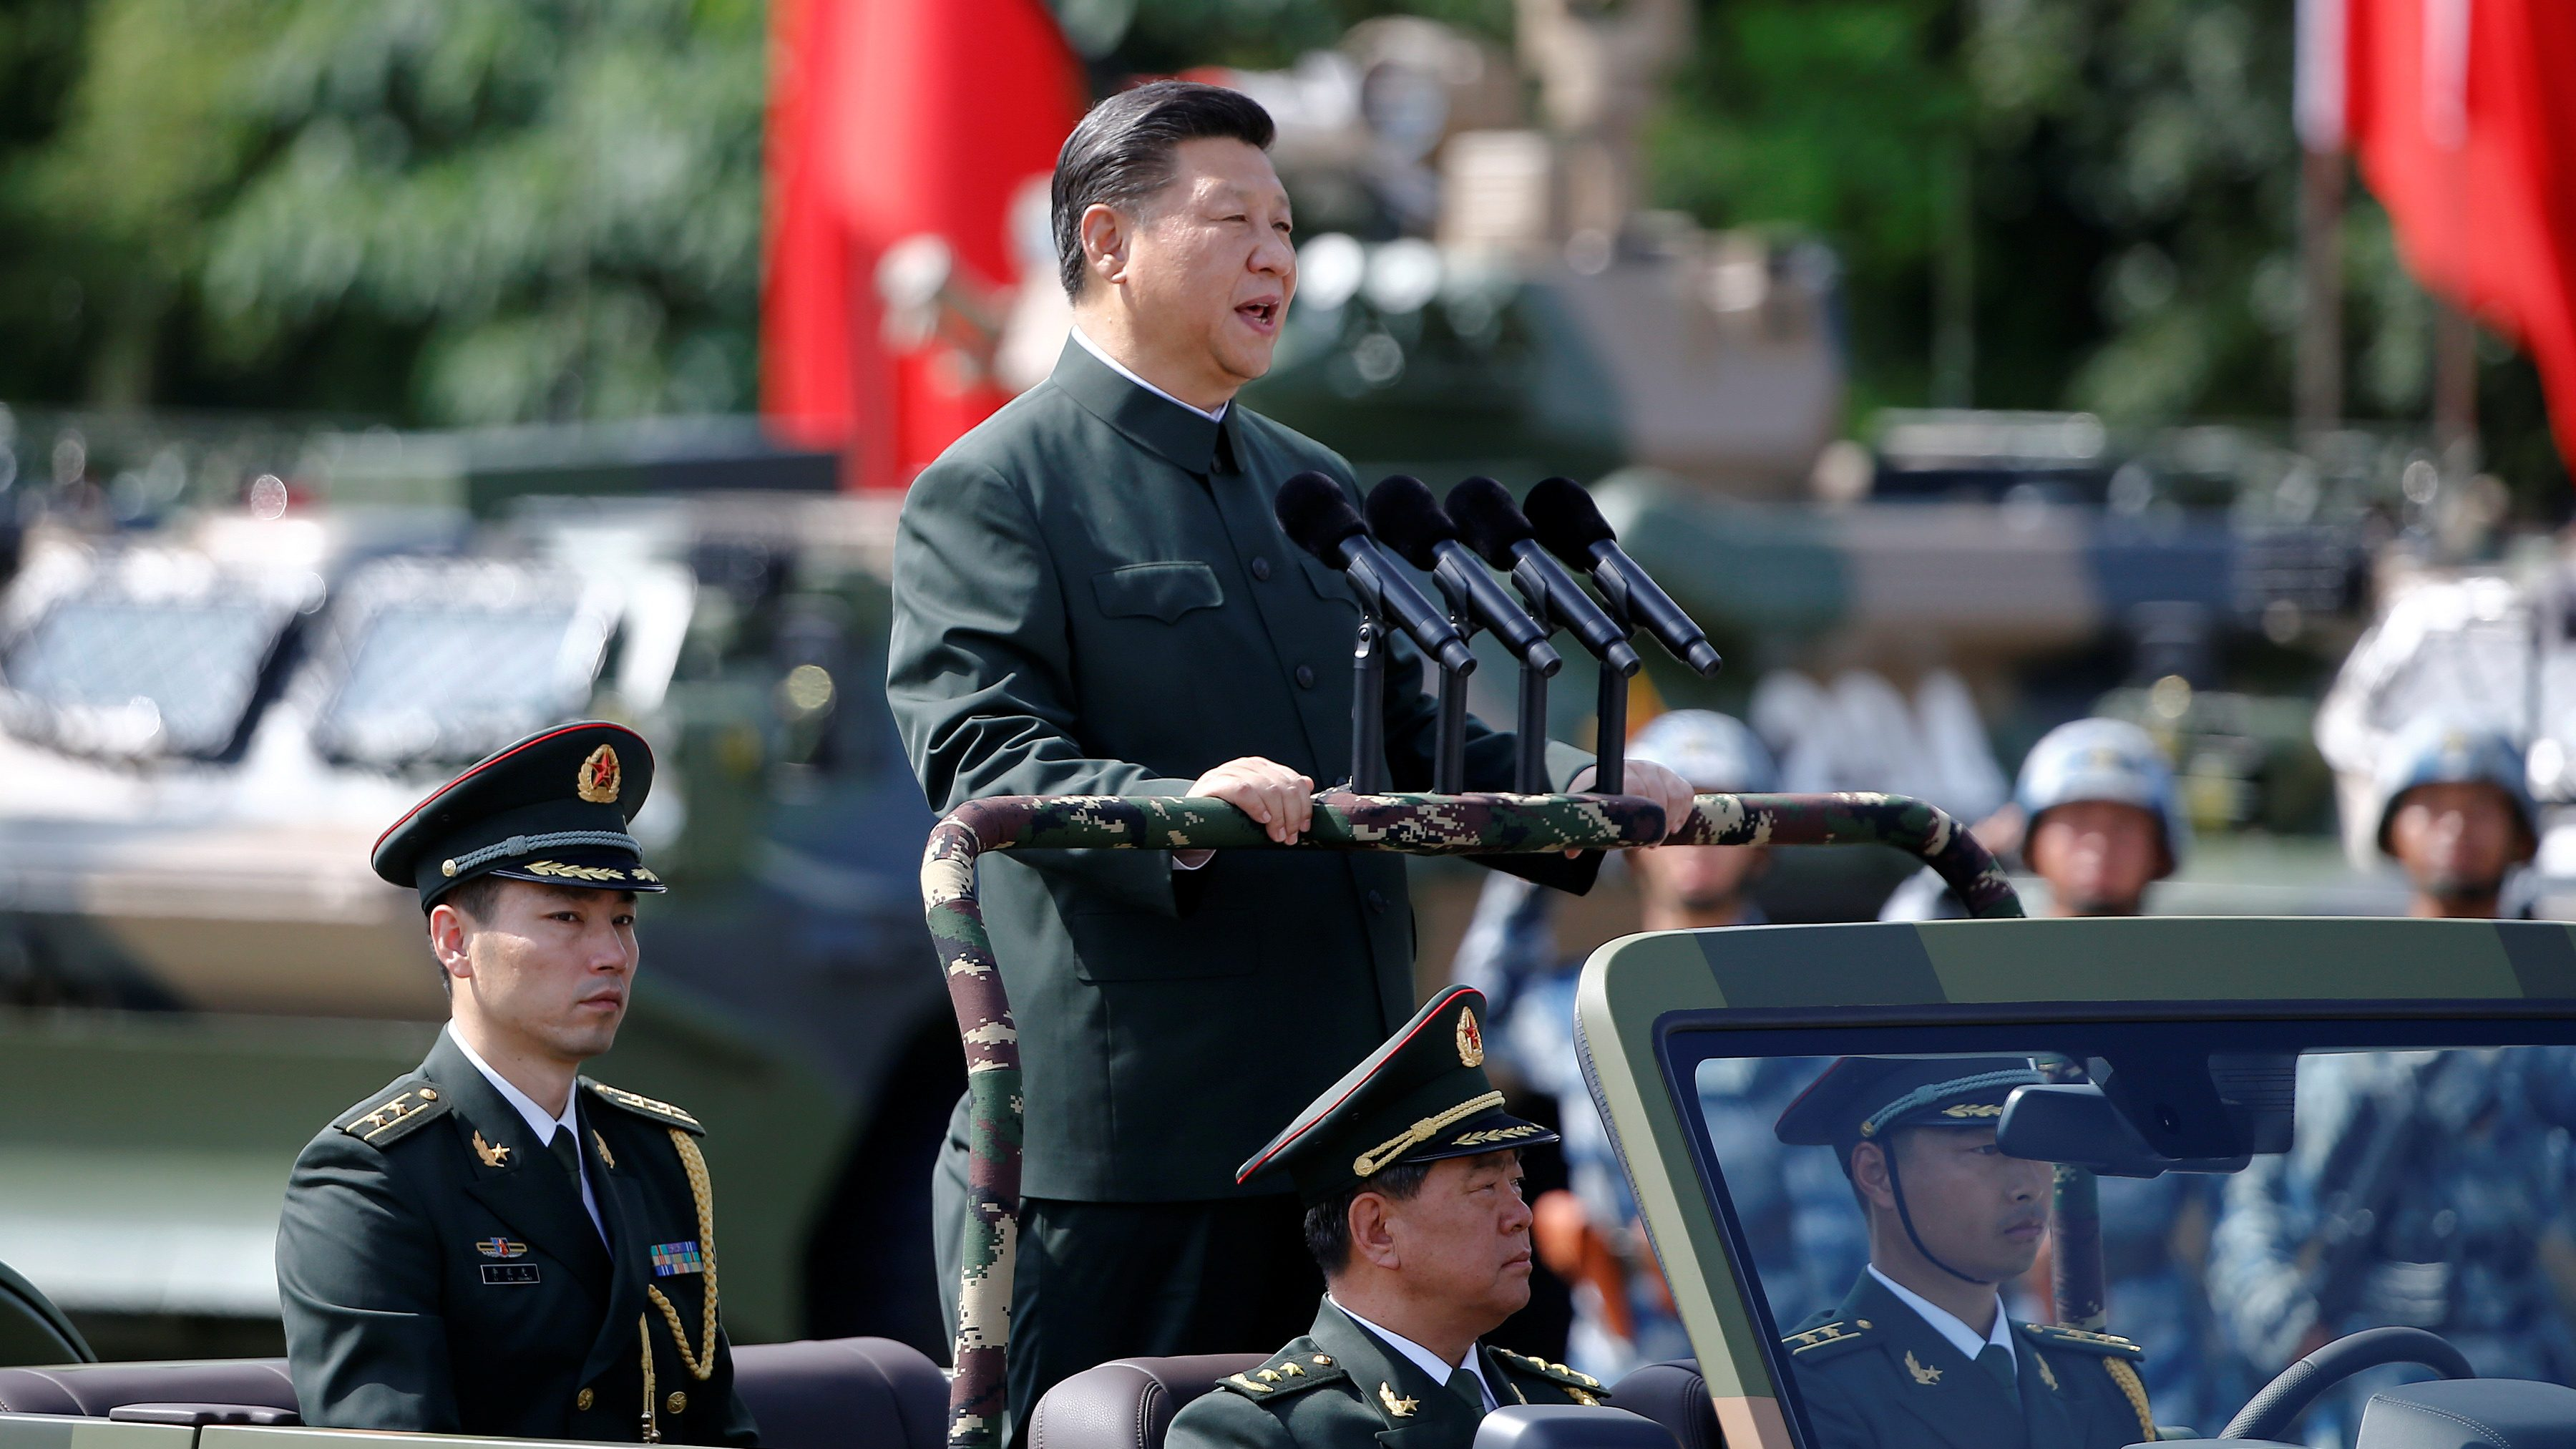 Chinese President Xi Jinping inspects troops at the People's Liberation Army (PLA) Hong Kong Garrison as part of events marking the 20th anniversary of the city's handover from British to Chinese rule, in Hong Kong, China June 30, 2017.